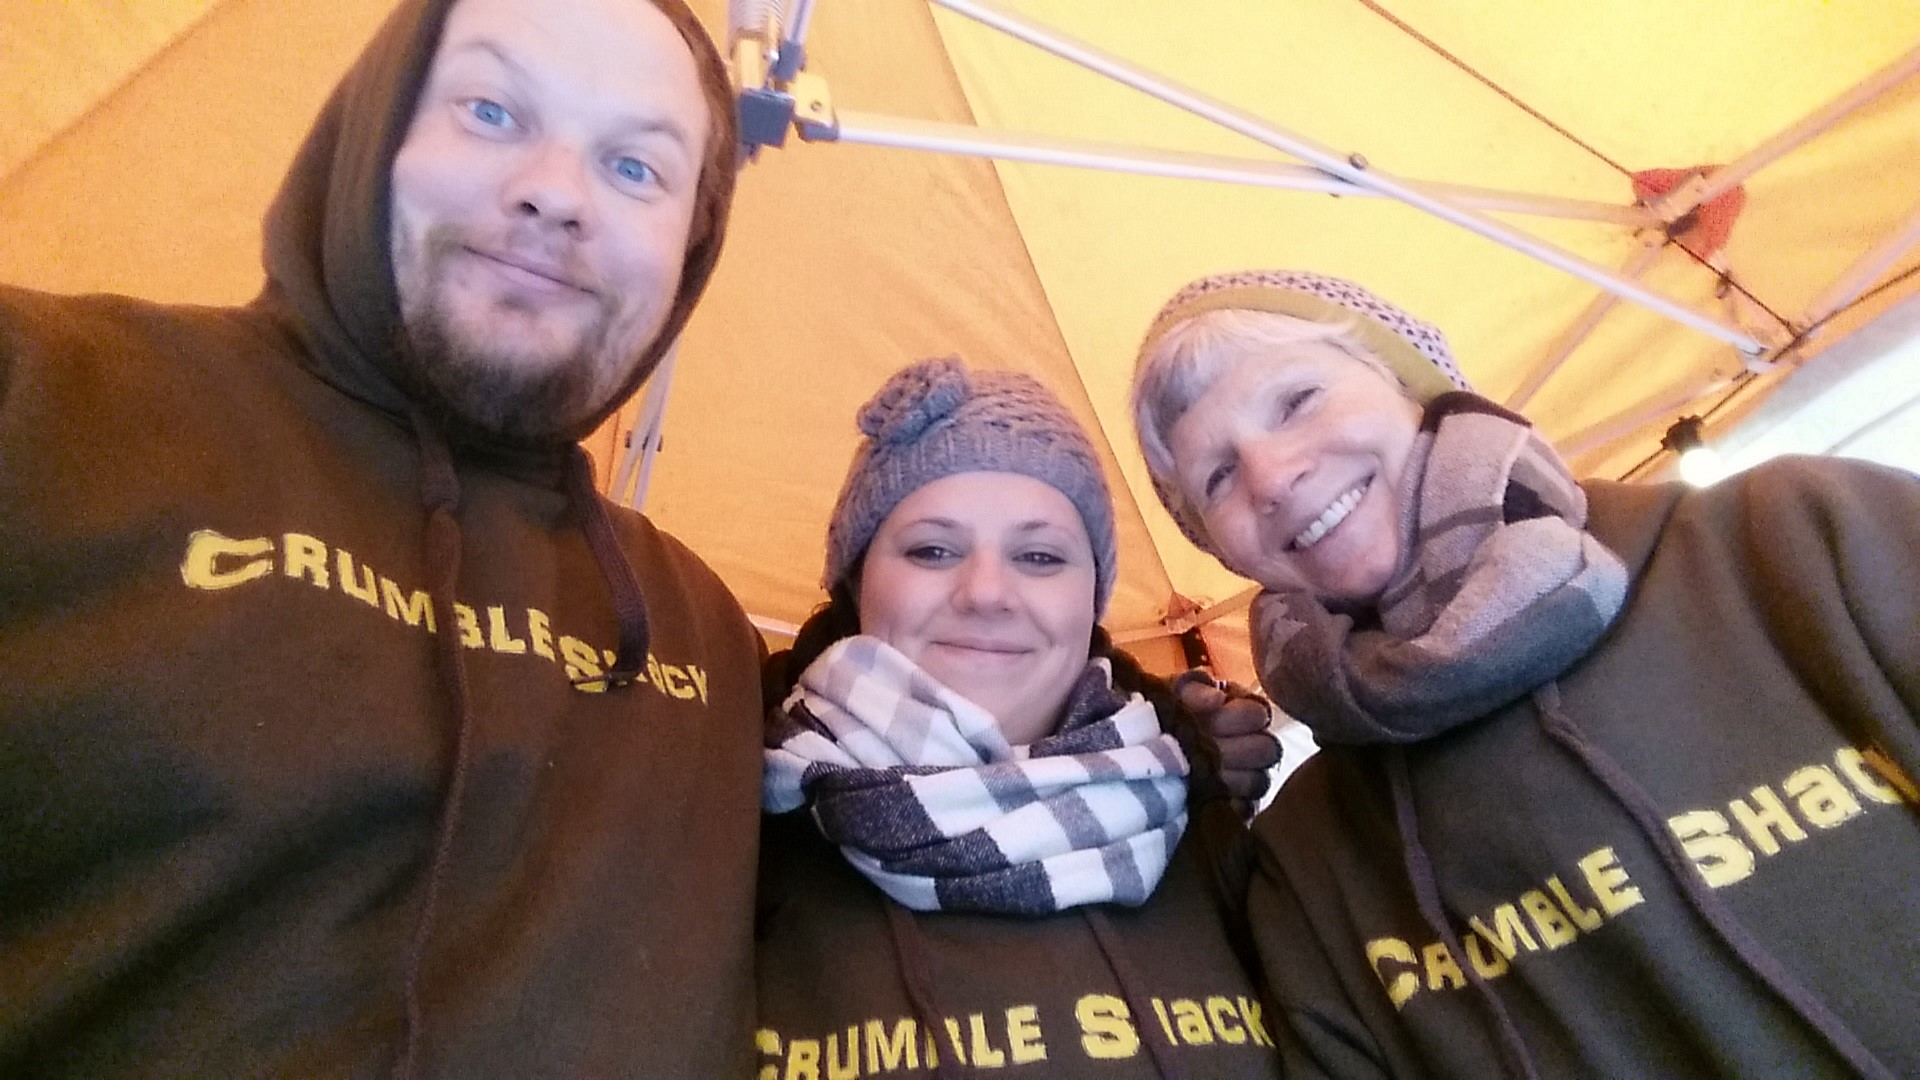 Crumble Shack Team at the Southbank